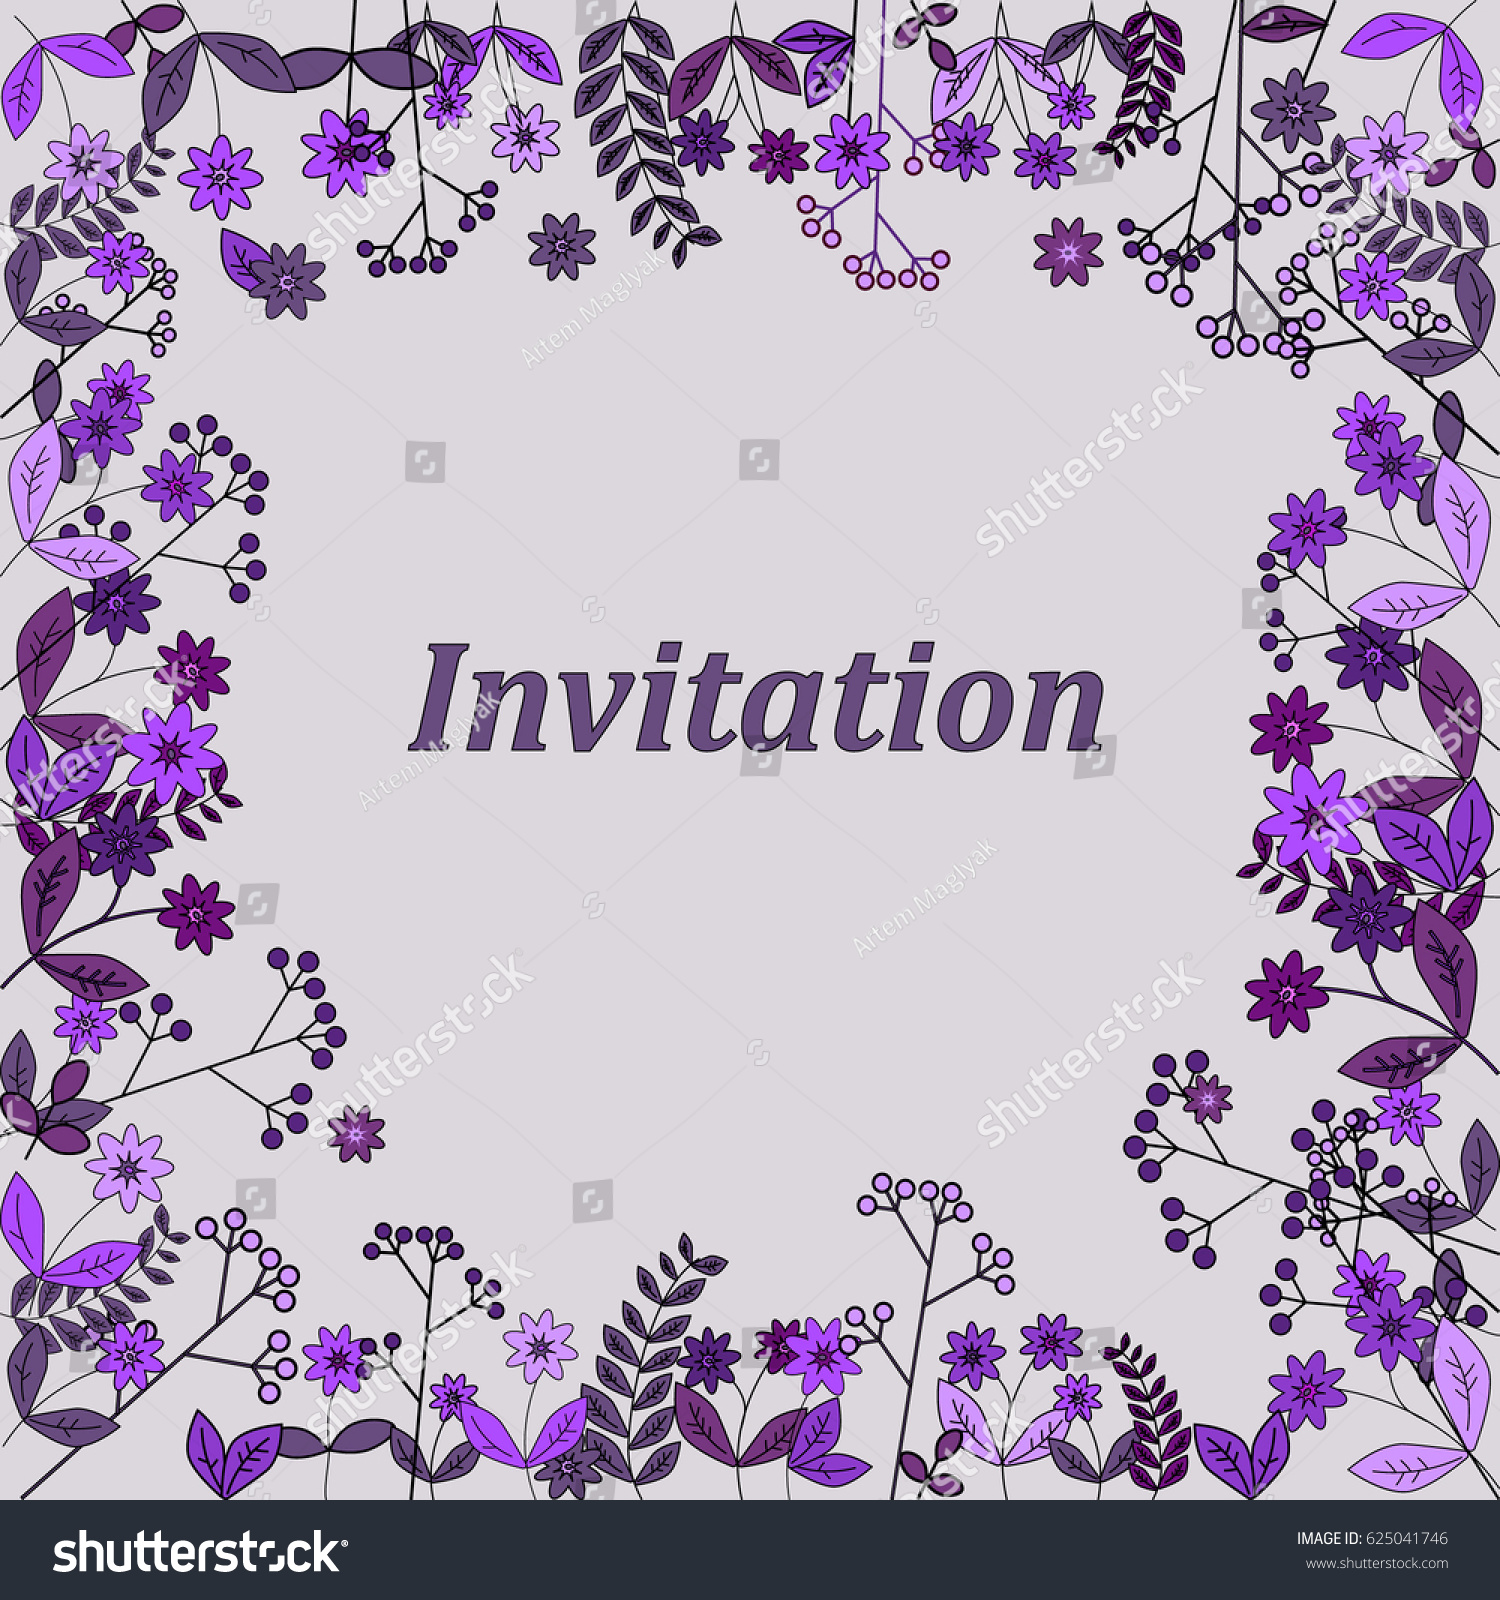 Invitation card with flowers for wedding background cute purple invitation card with flowers for wedding background cute purple flowers frame ez canvas izmirmasajfo